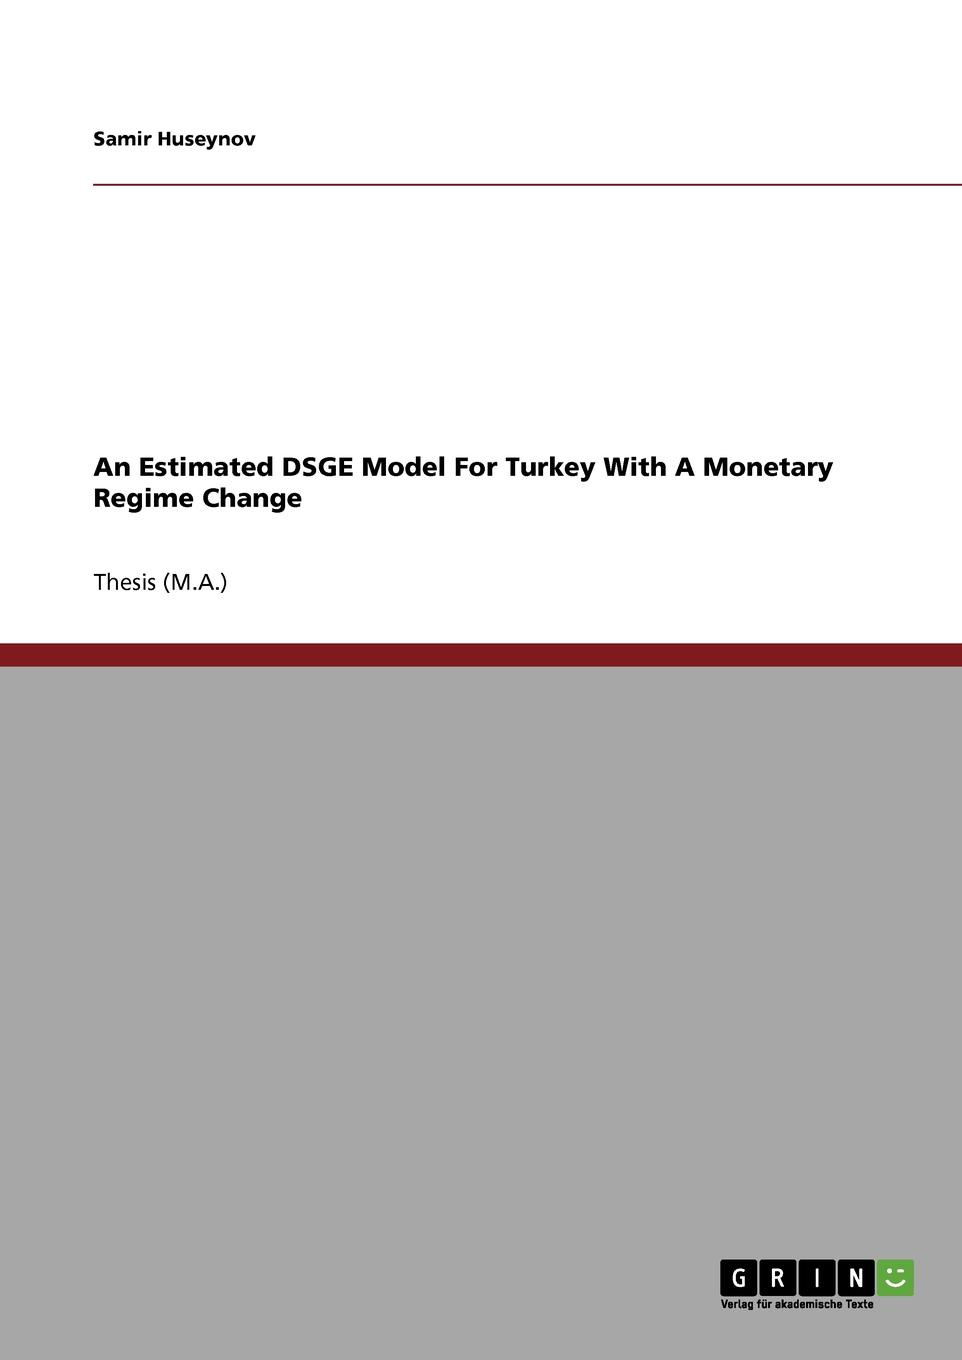 An Estimated DSGE Model For Turkey With A Monetary Regime Change Thesis (M.A.) from the year 2010 in the subject Business economics...